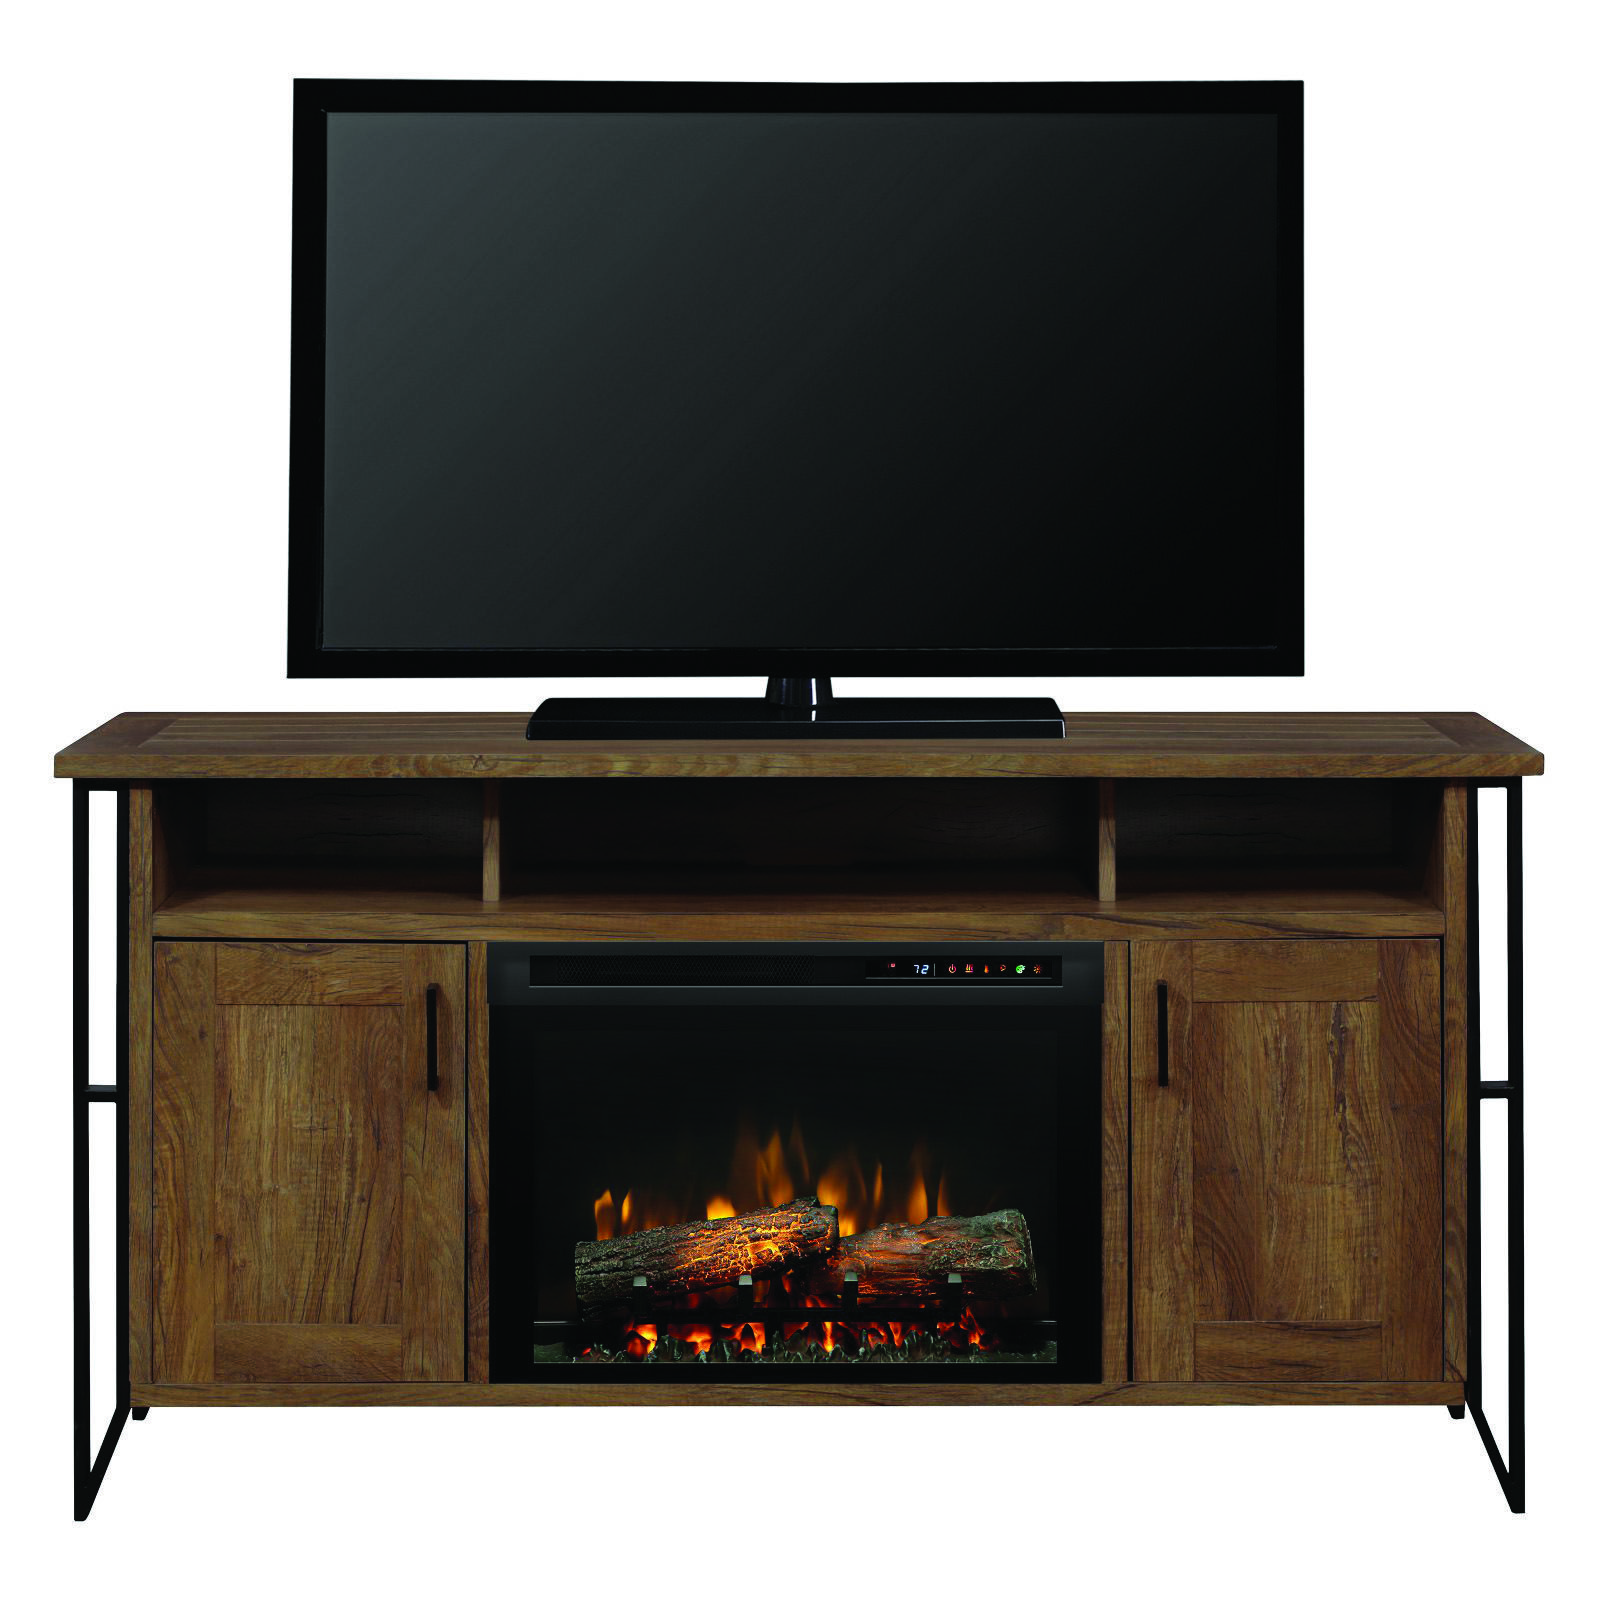 Savvy And Inspiring Fireplace Tv Stand At Lowes That Will Impress